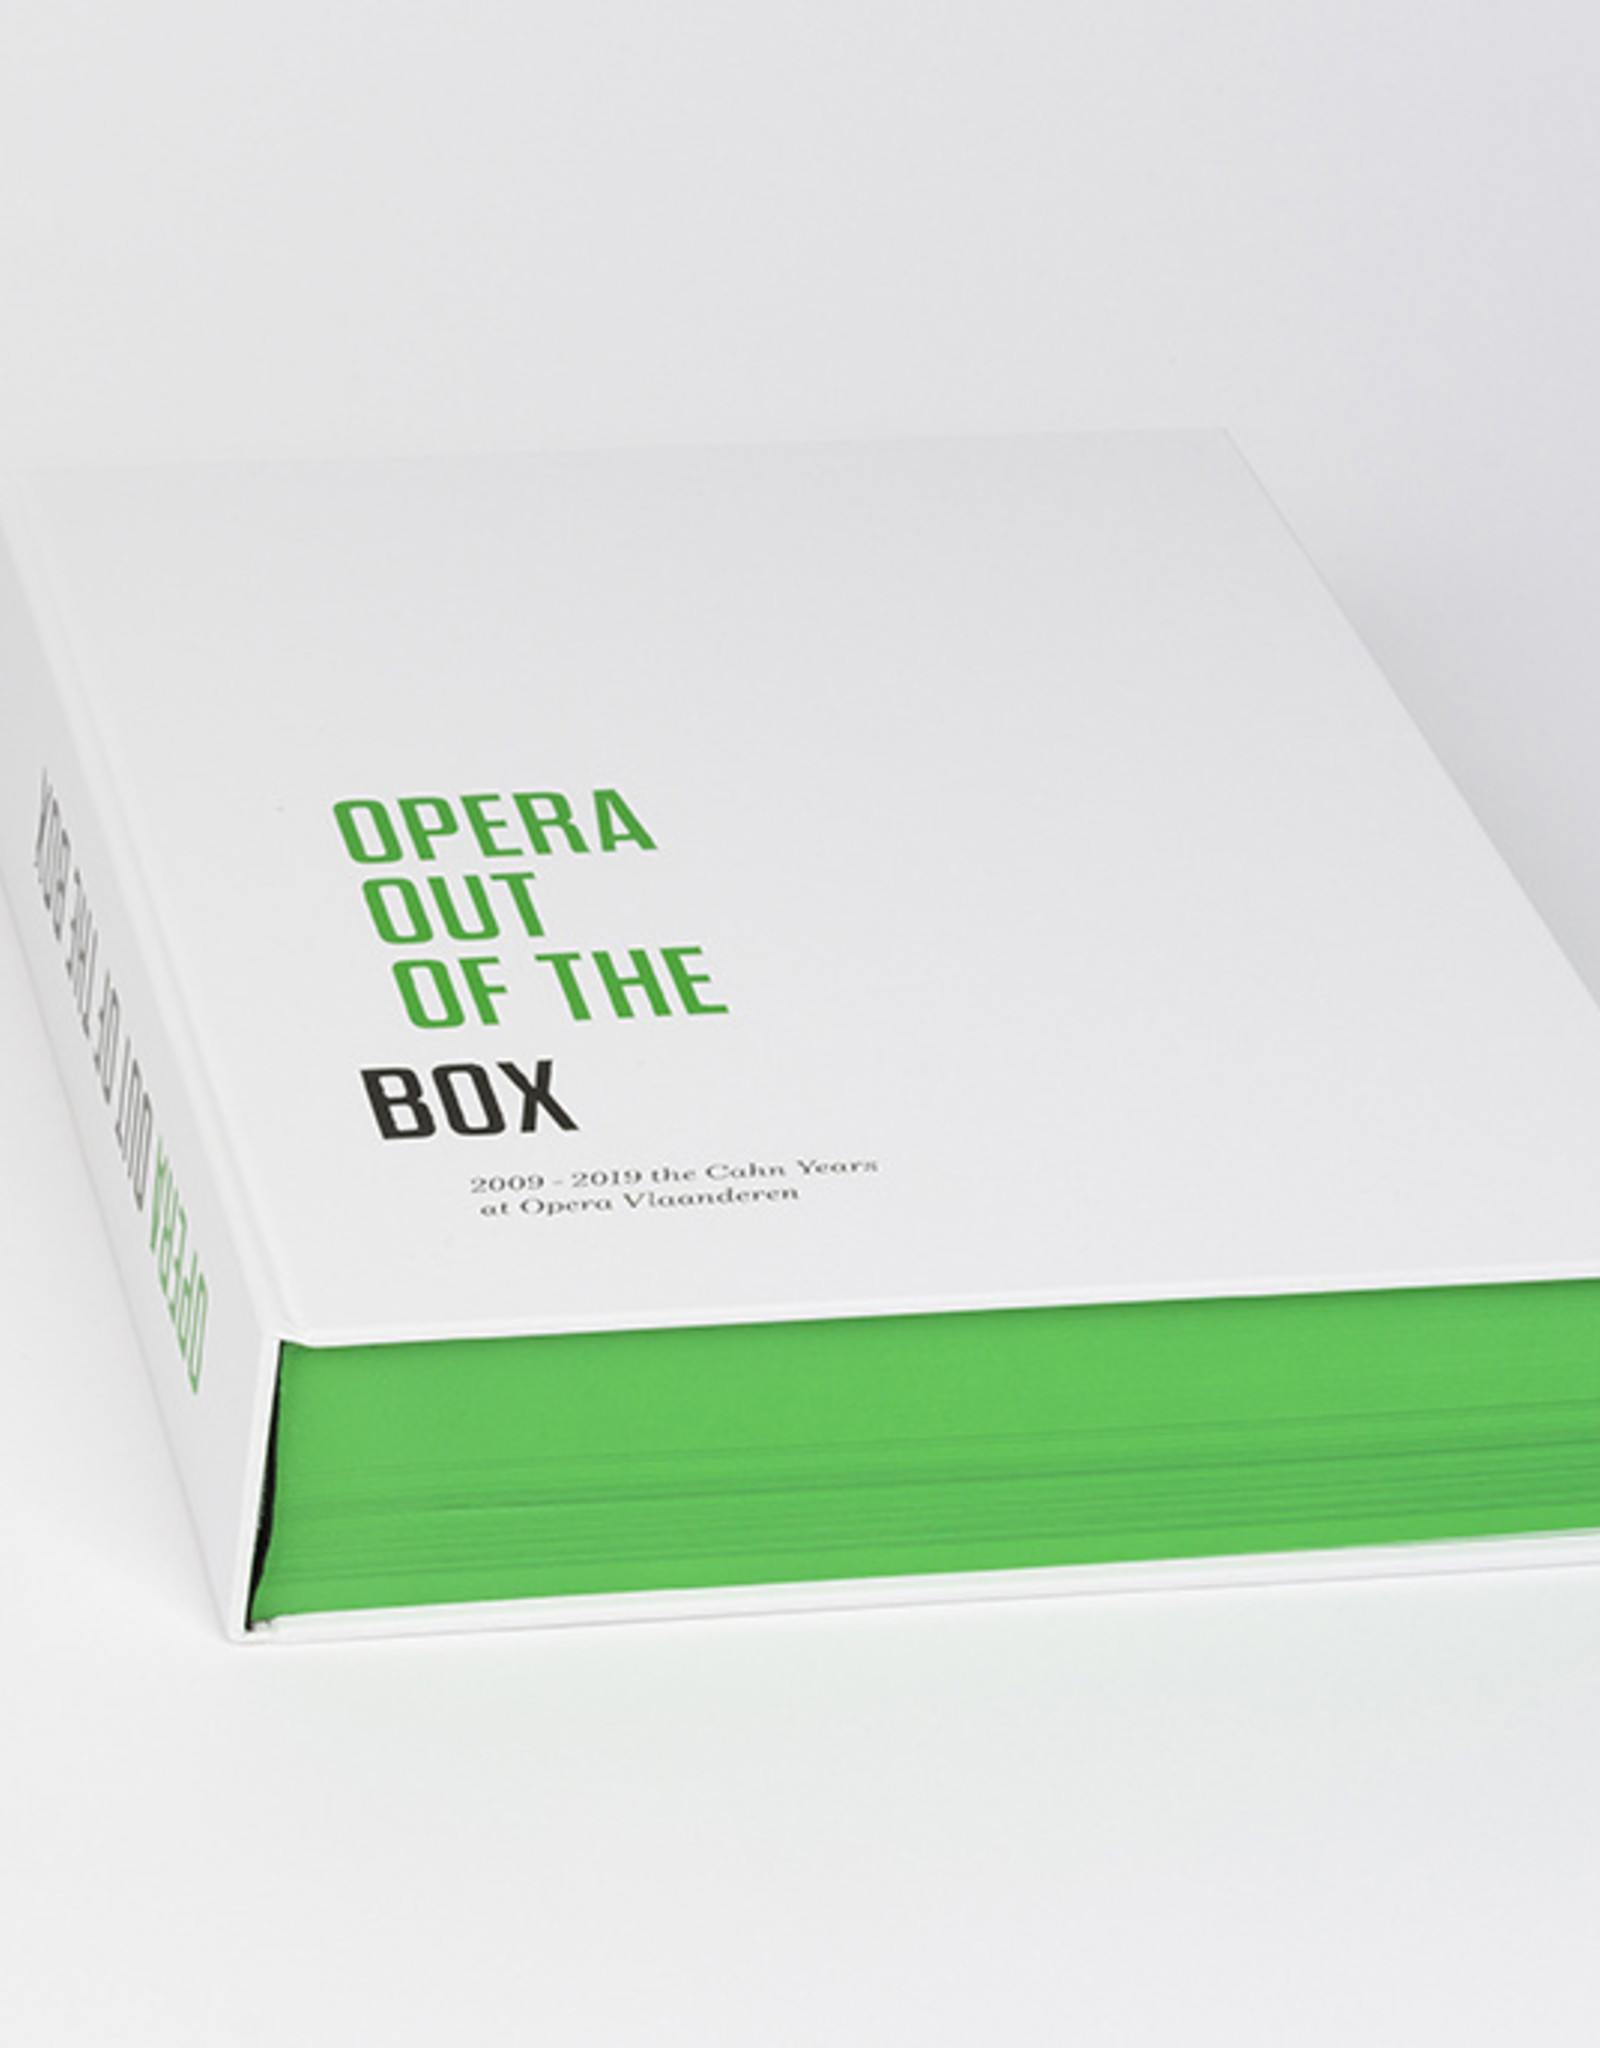 Opera Out of the Box, 2009-2019, The Cahn Years at Opera Vlaanderen